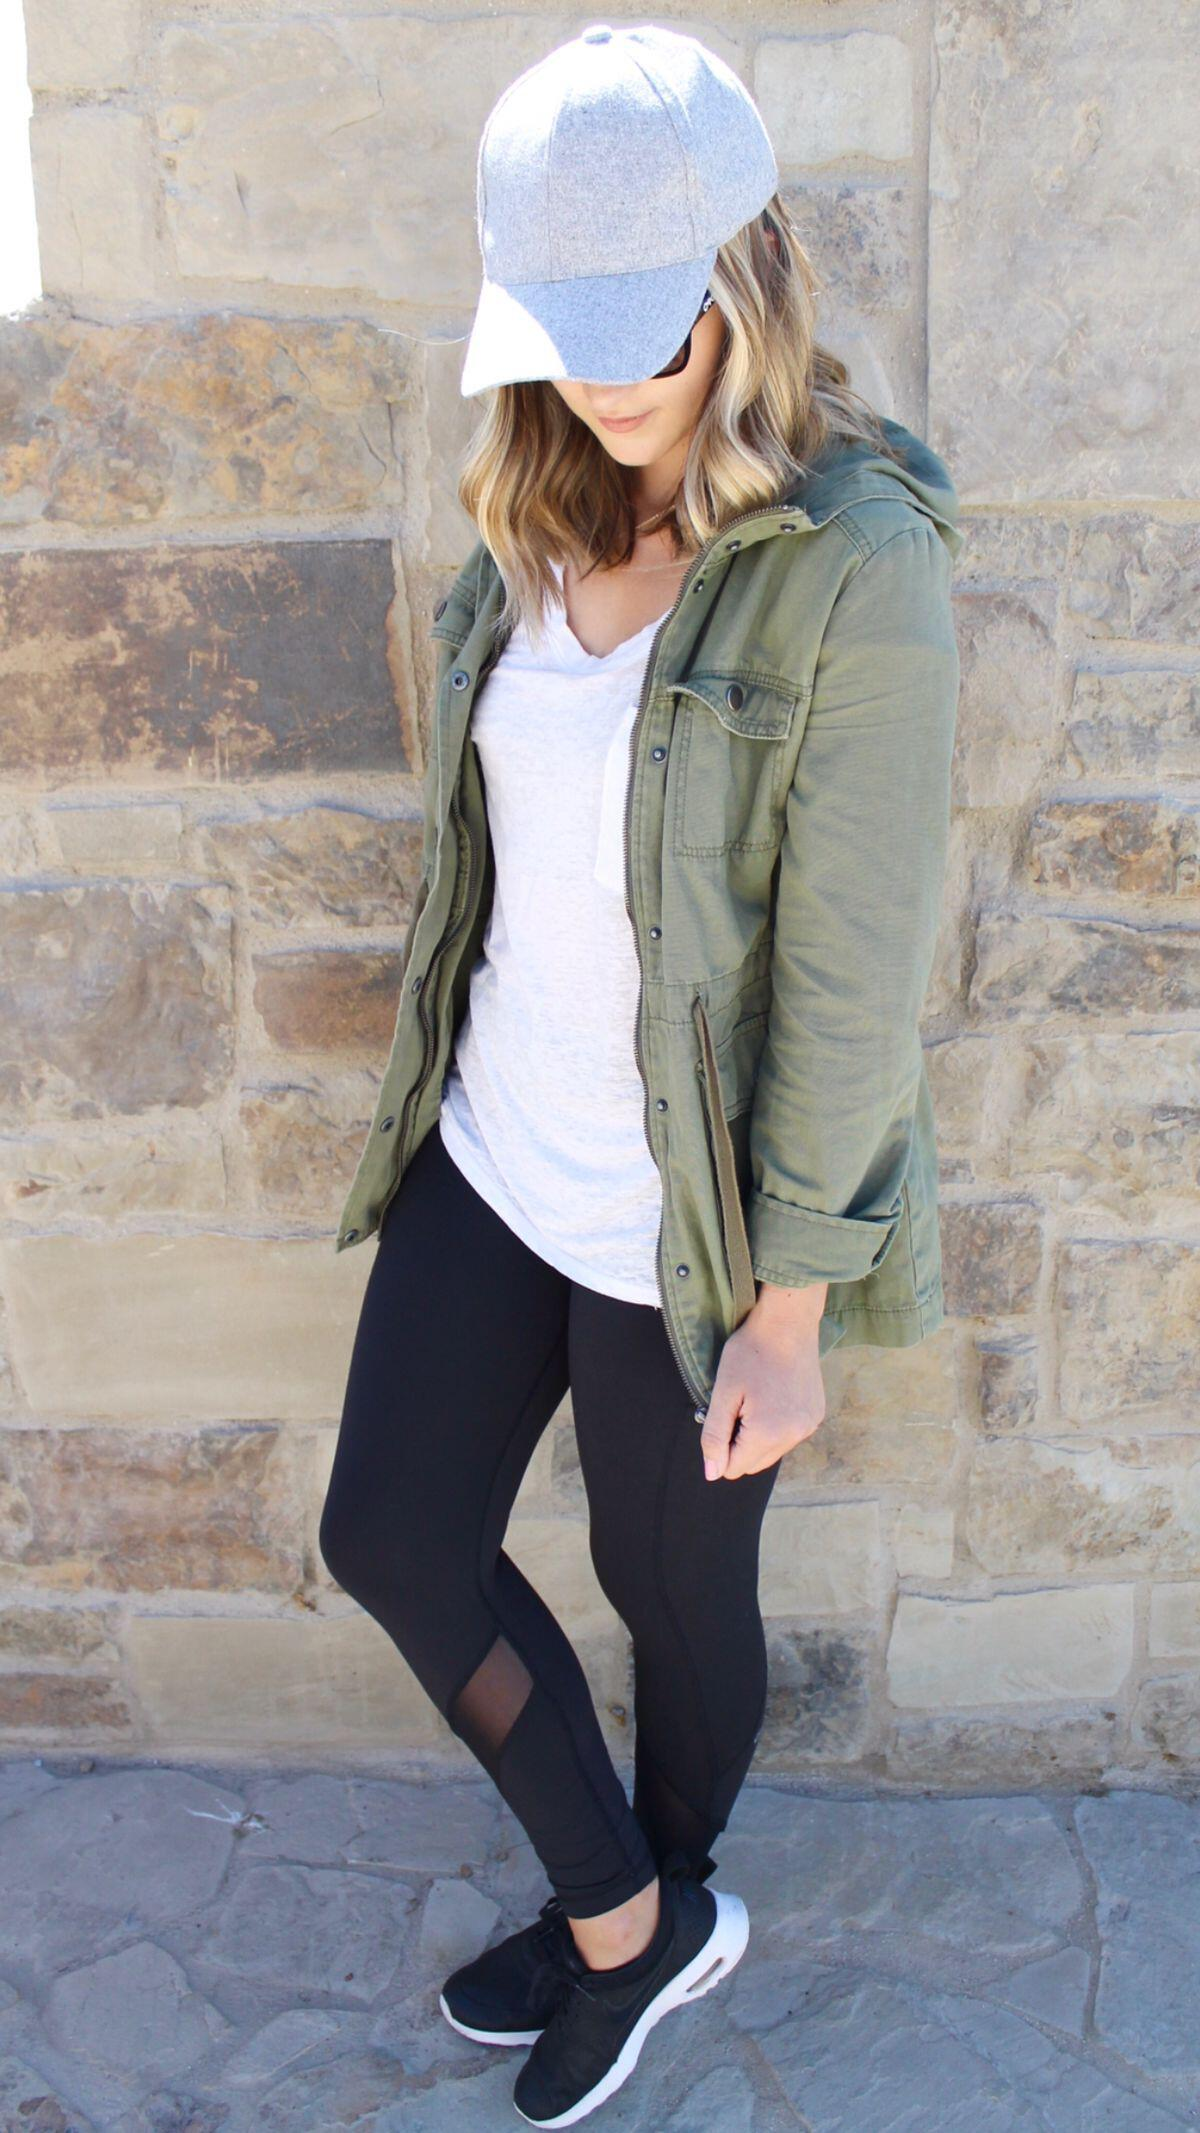 casual fall outfits 5 best outfits 2 - 14 casual fall outfits that you can wear all day